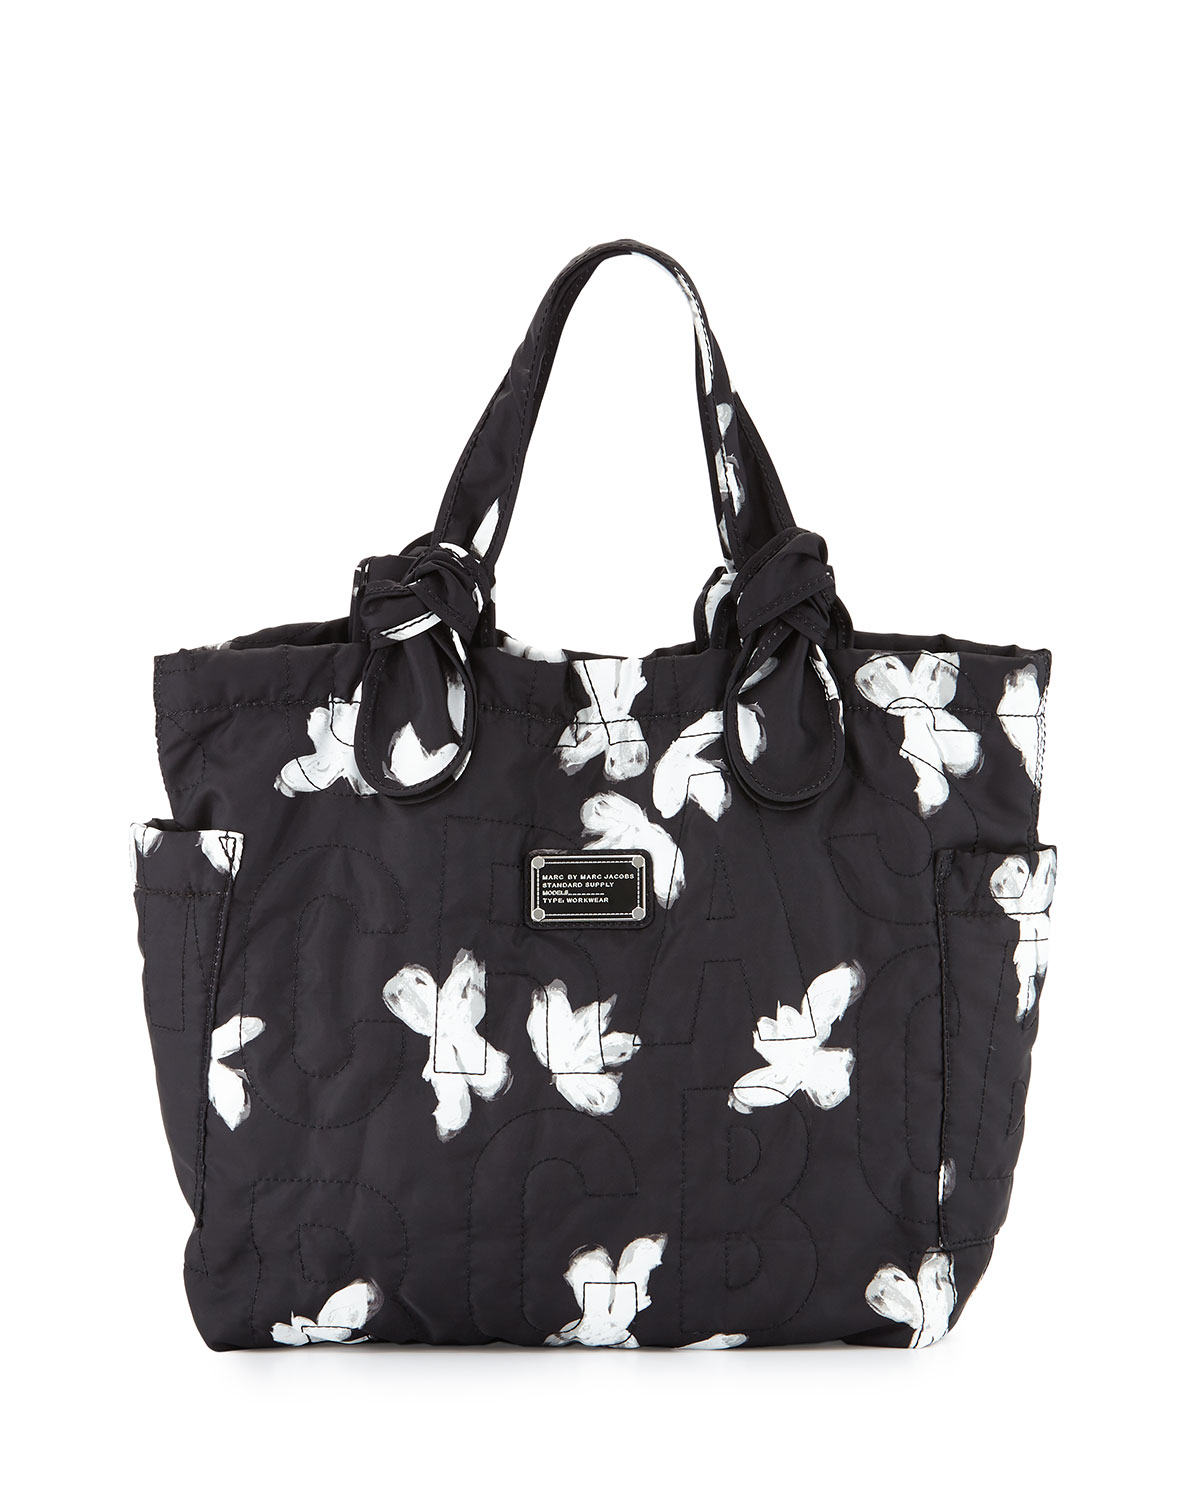 Lyst - Marc by marc jacobs Pretty Nylon Tate Medium Tote Bag in Black : marc by marc jacobs quilted tote - Adamdwight.com